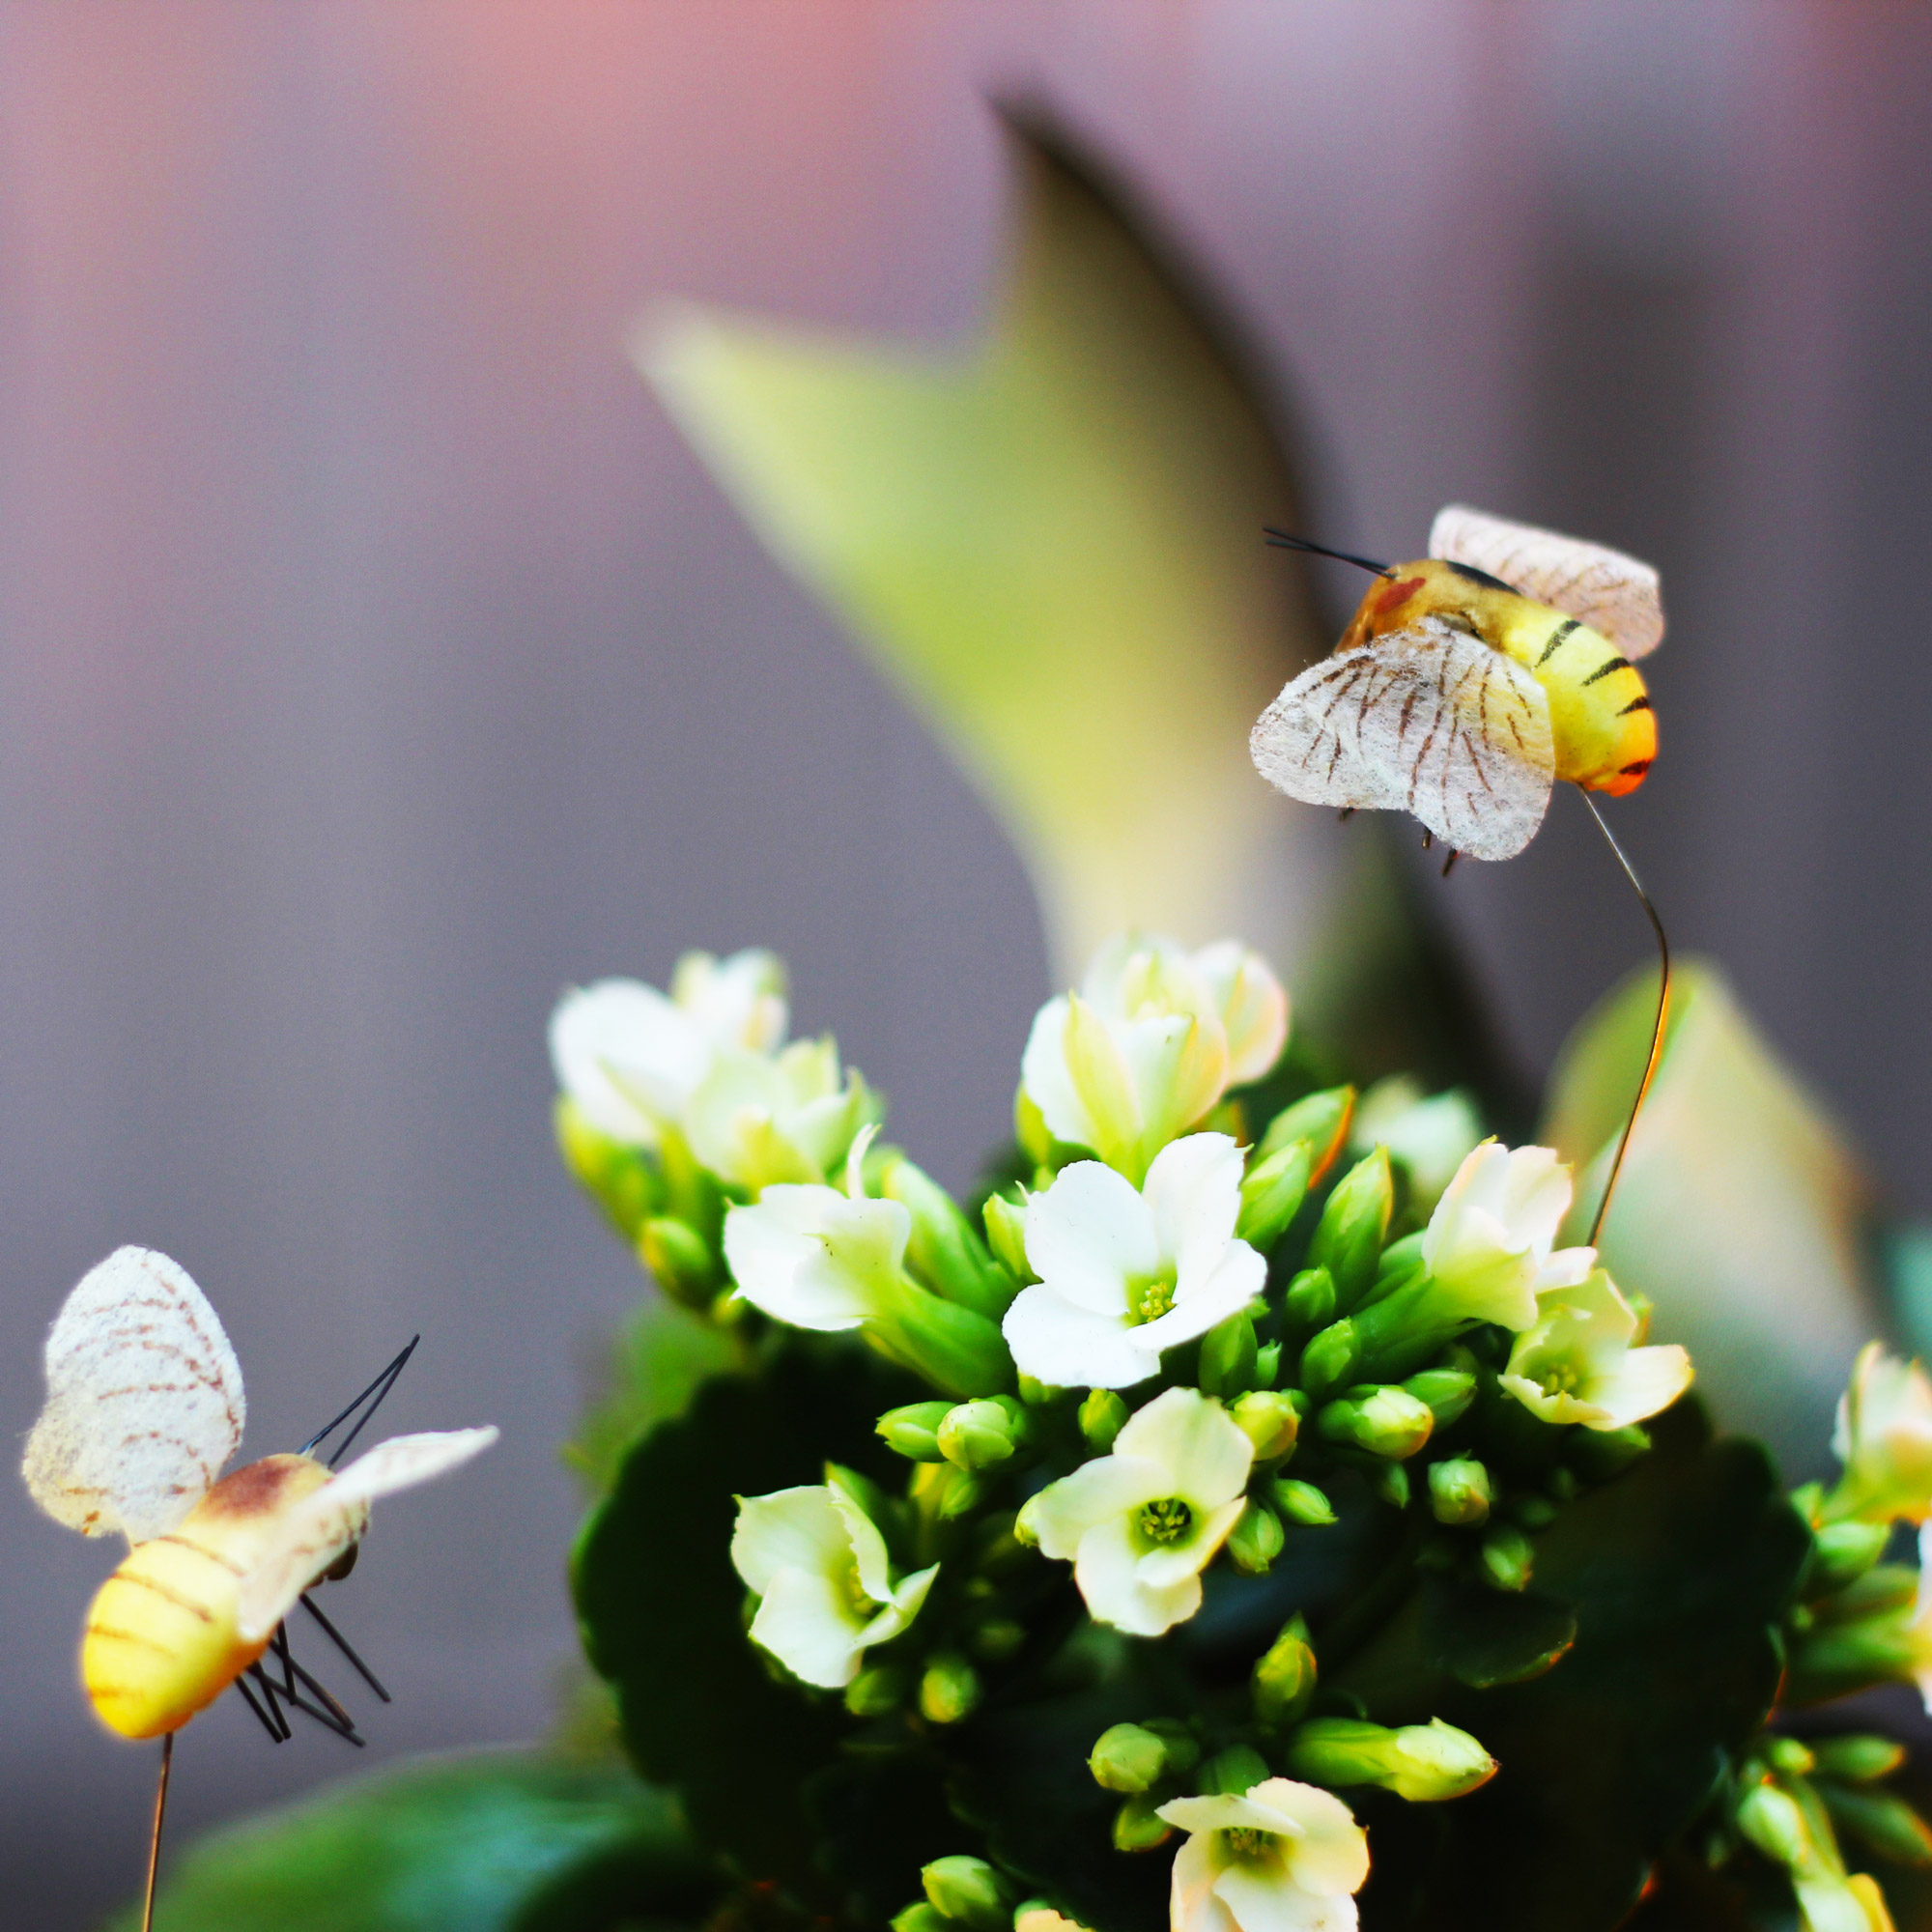 Bees look like they arehoovering above flowers.